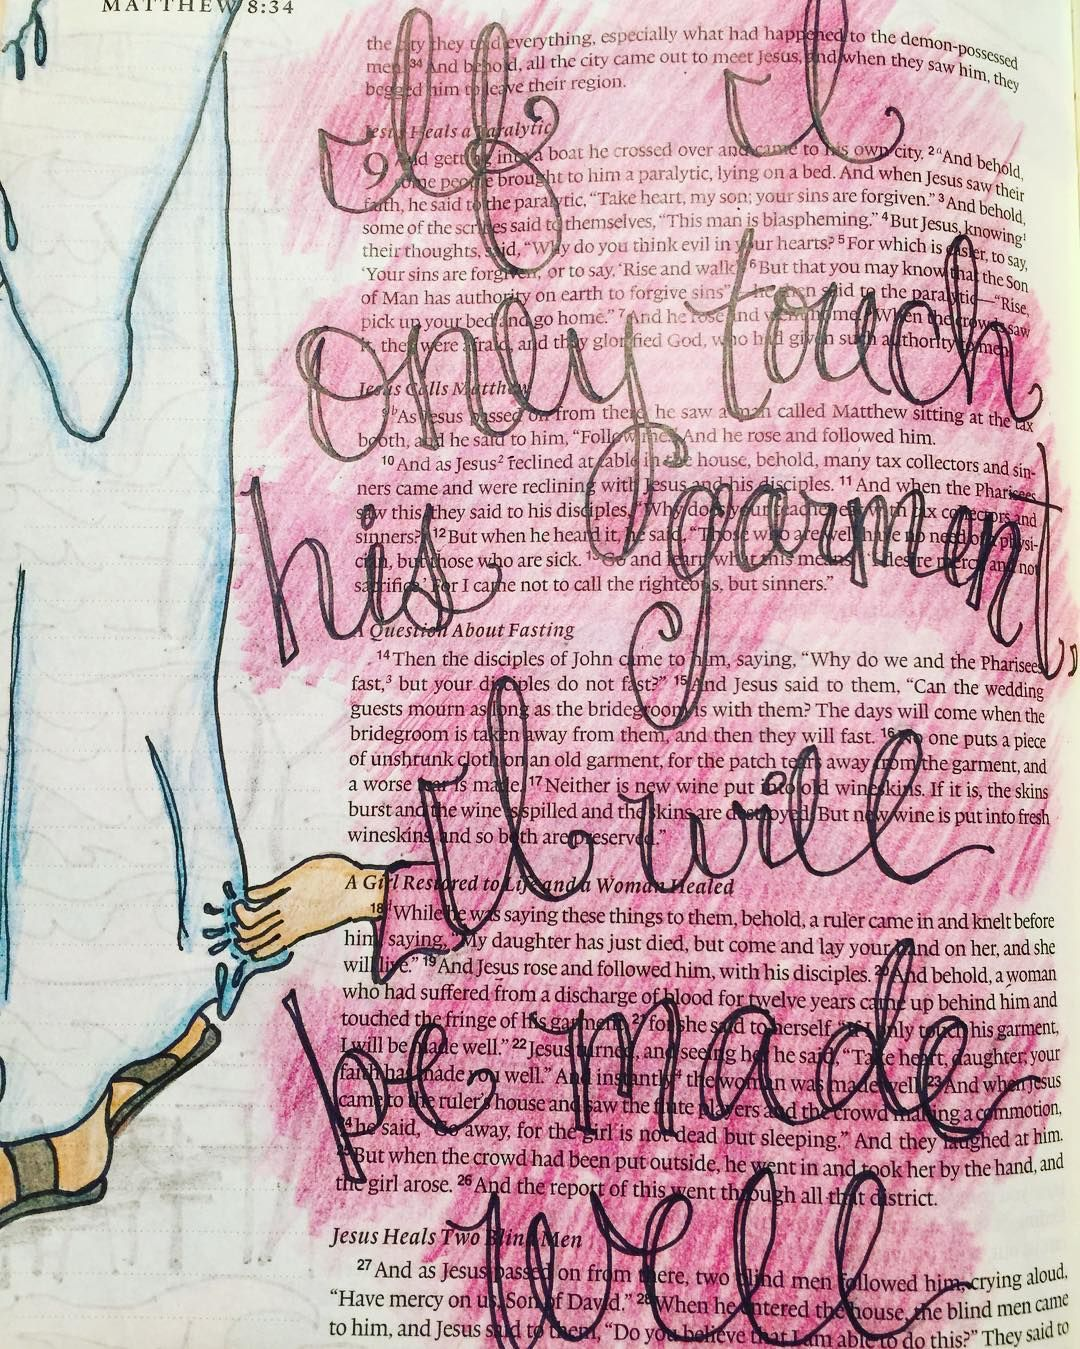 If I only touch His garment... #matthew8 #biblejournaling ...